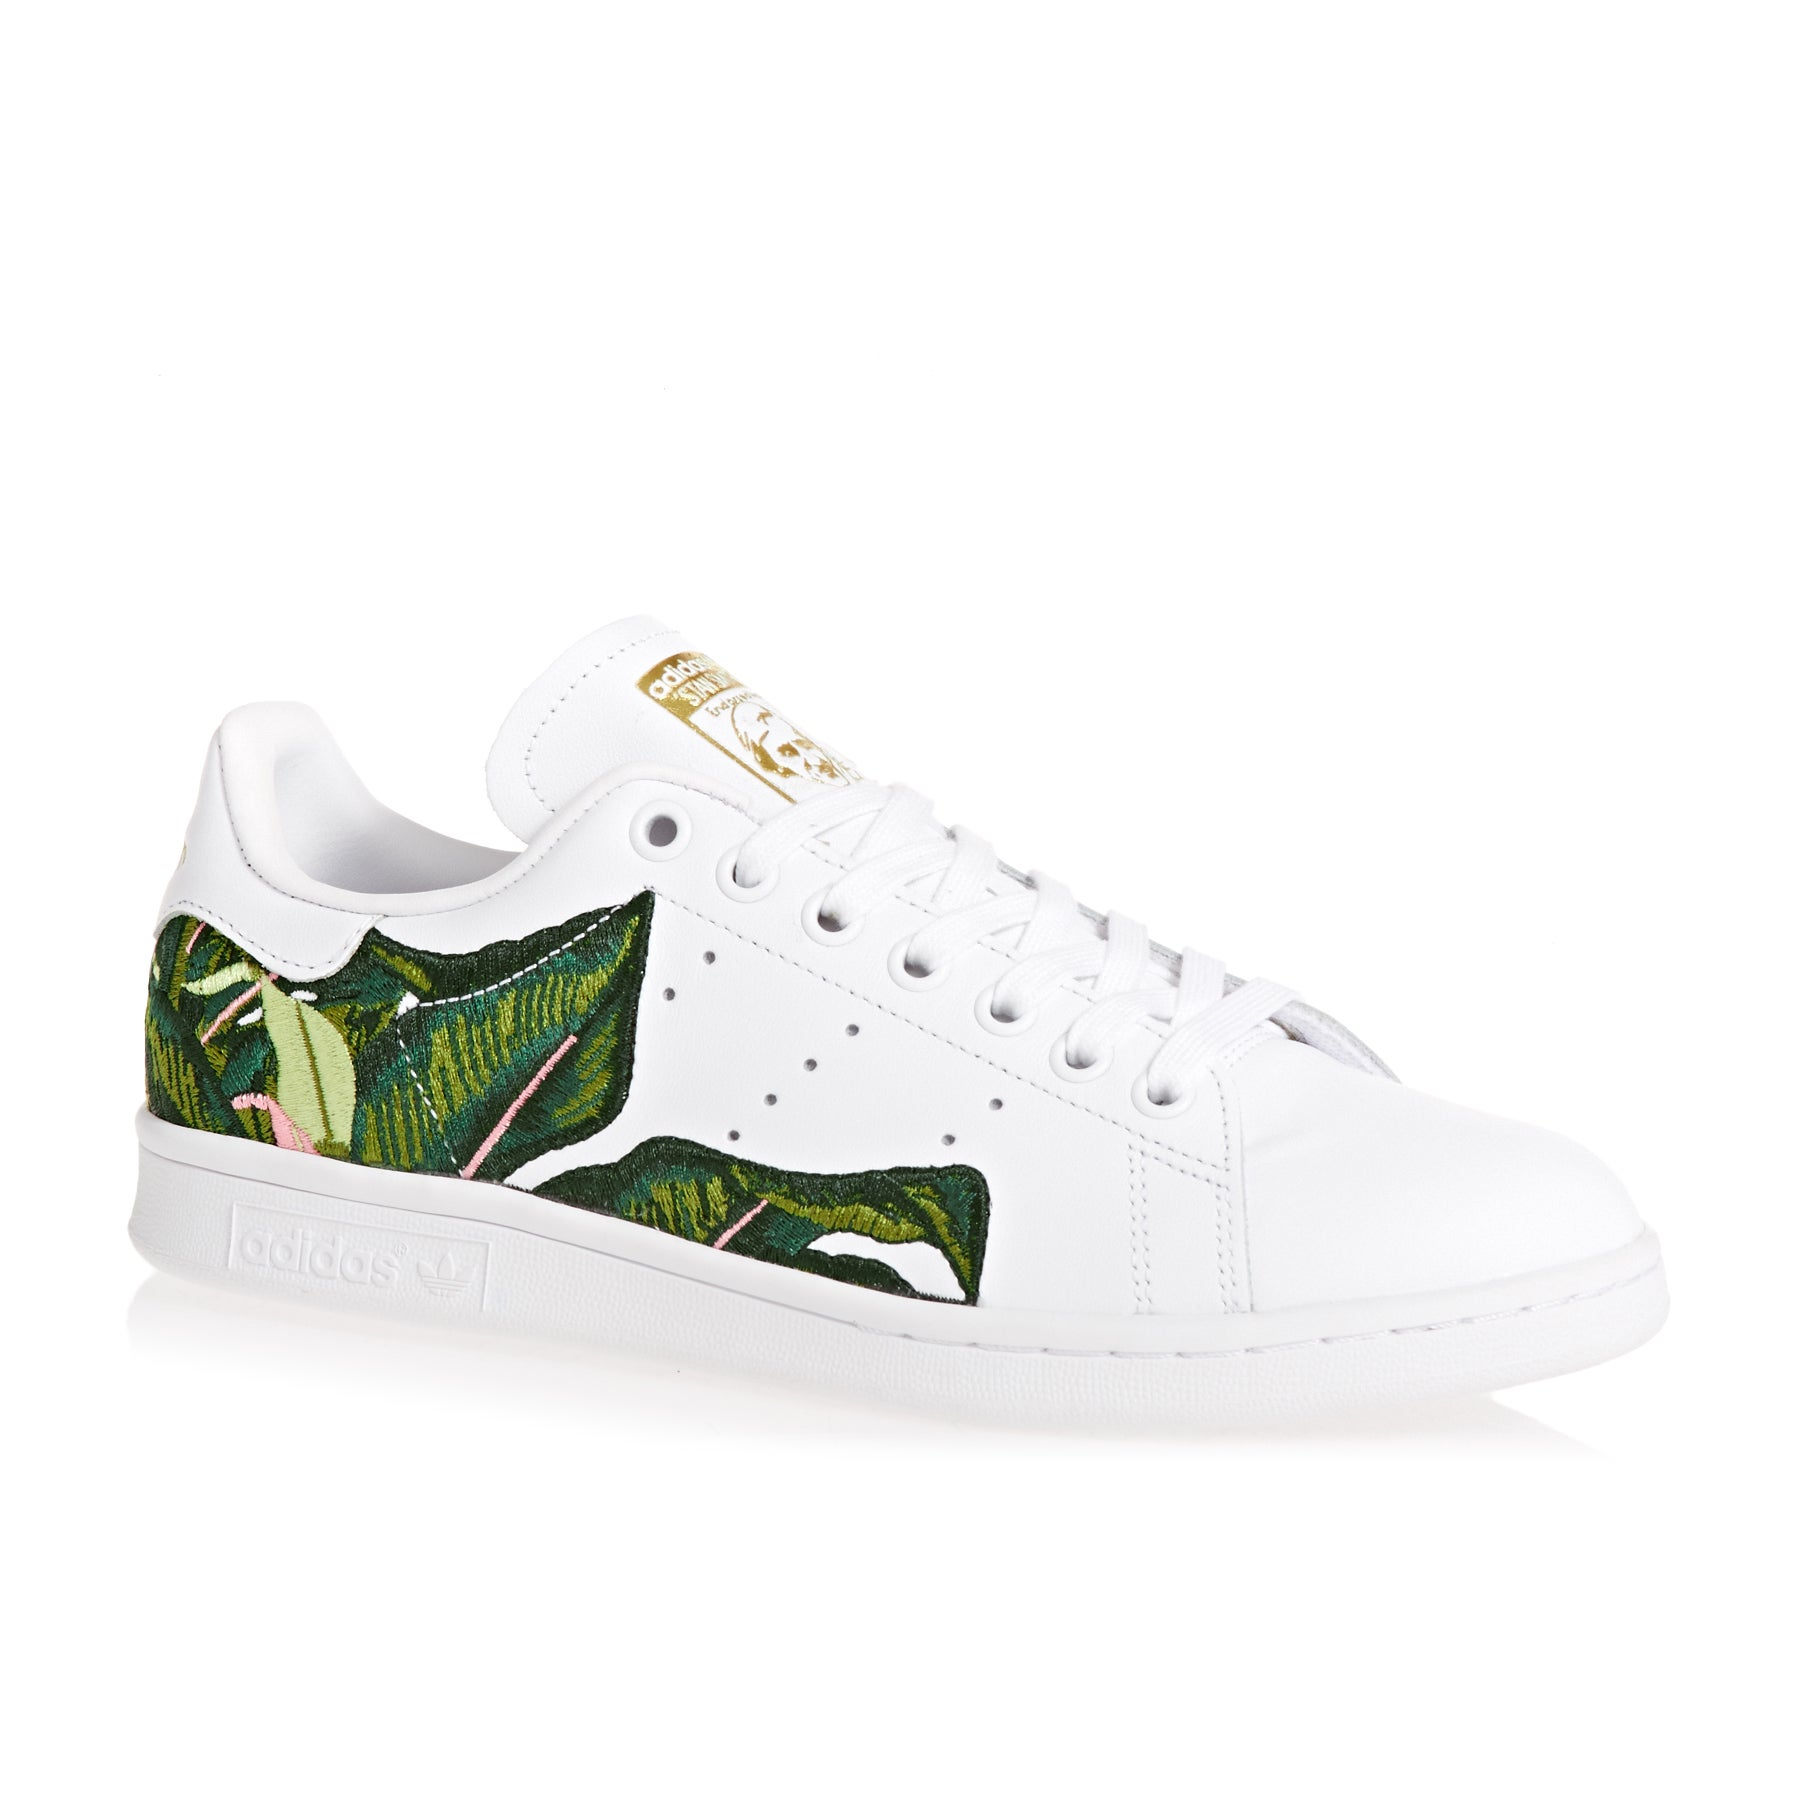 Adidas Originals Stan Smith Ladies Shoes